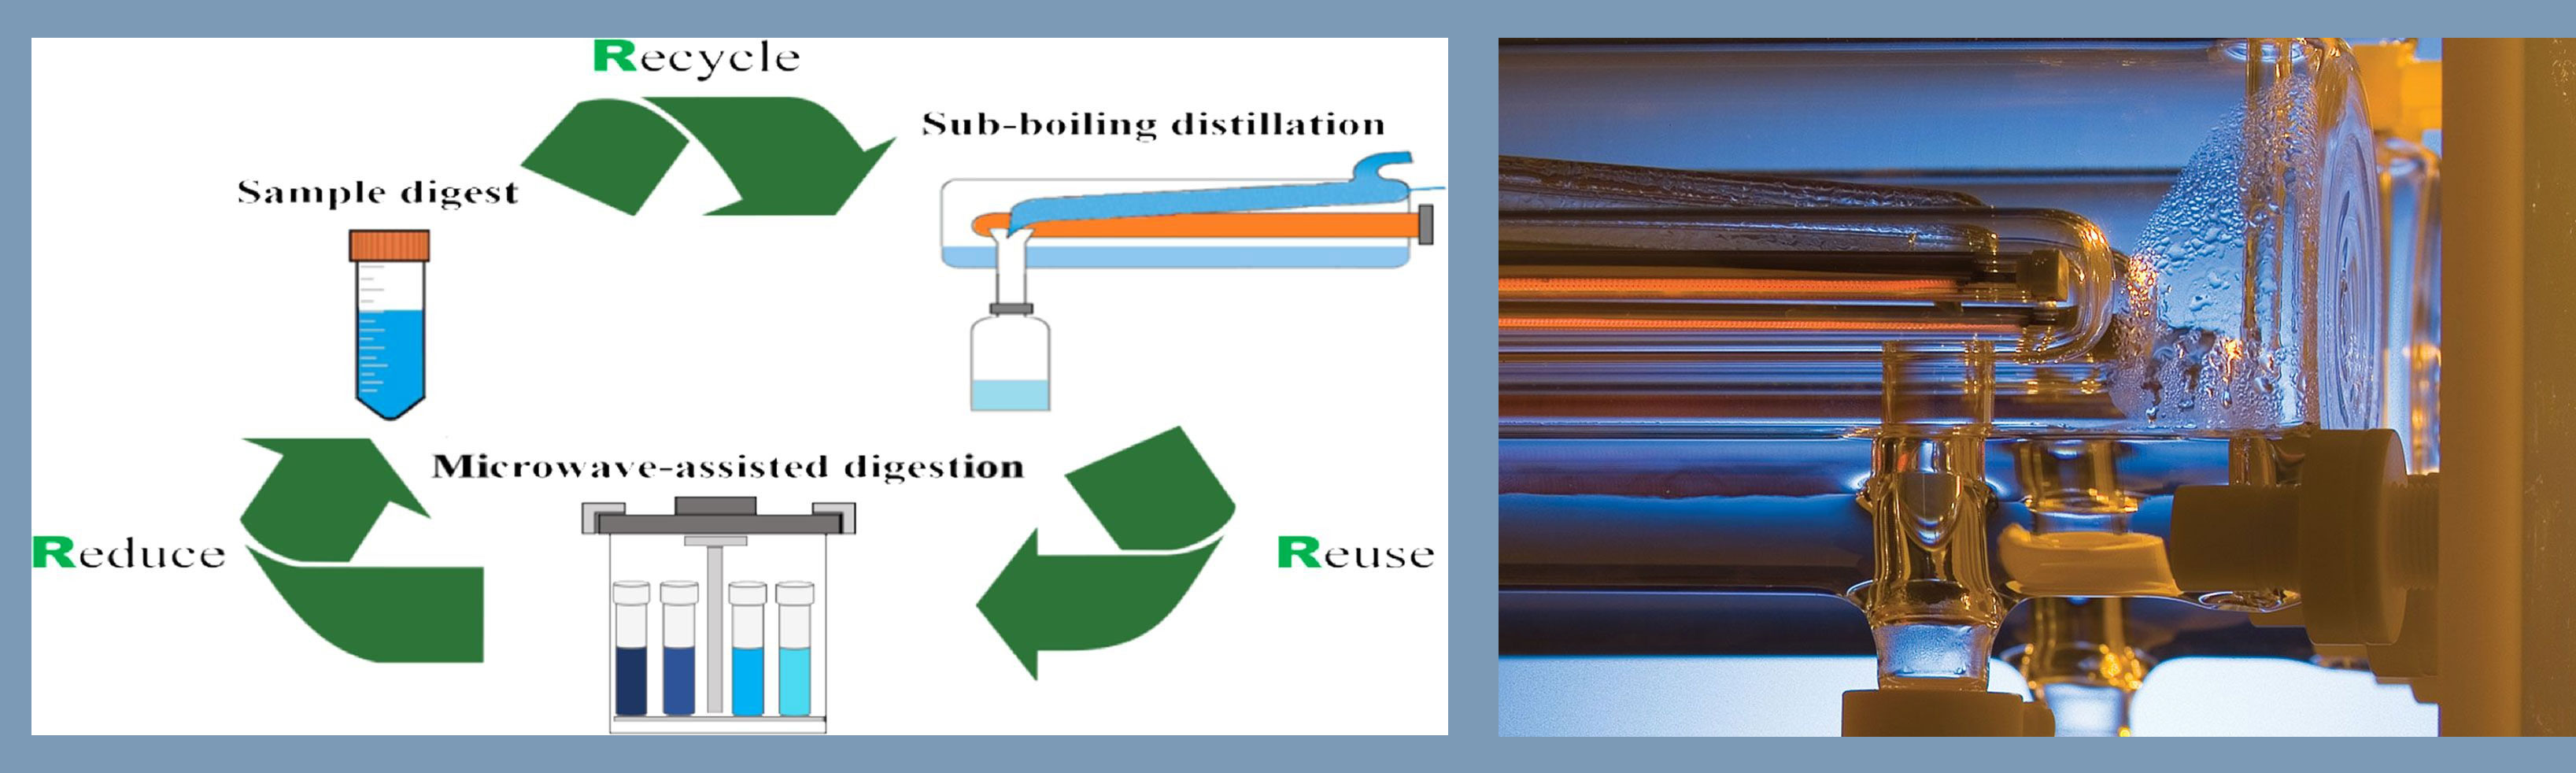 Evaluation of recycle and reuse of nitric acid from sample digests by sub-boiling distillation